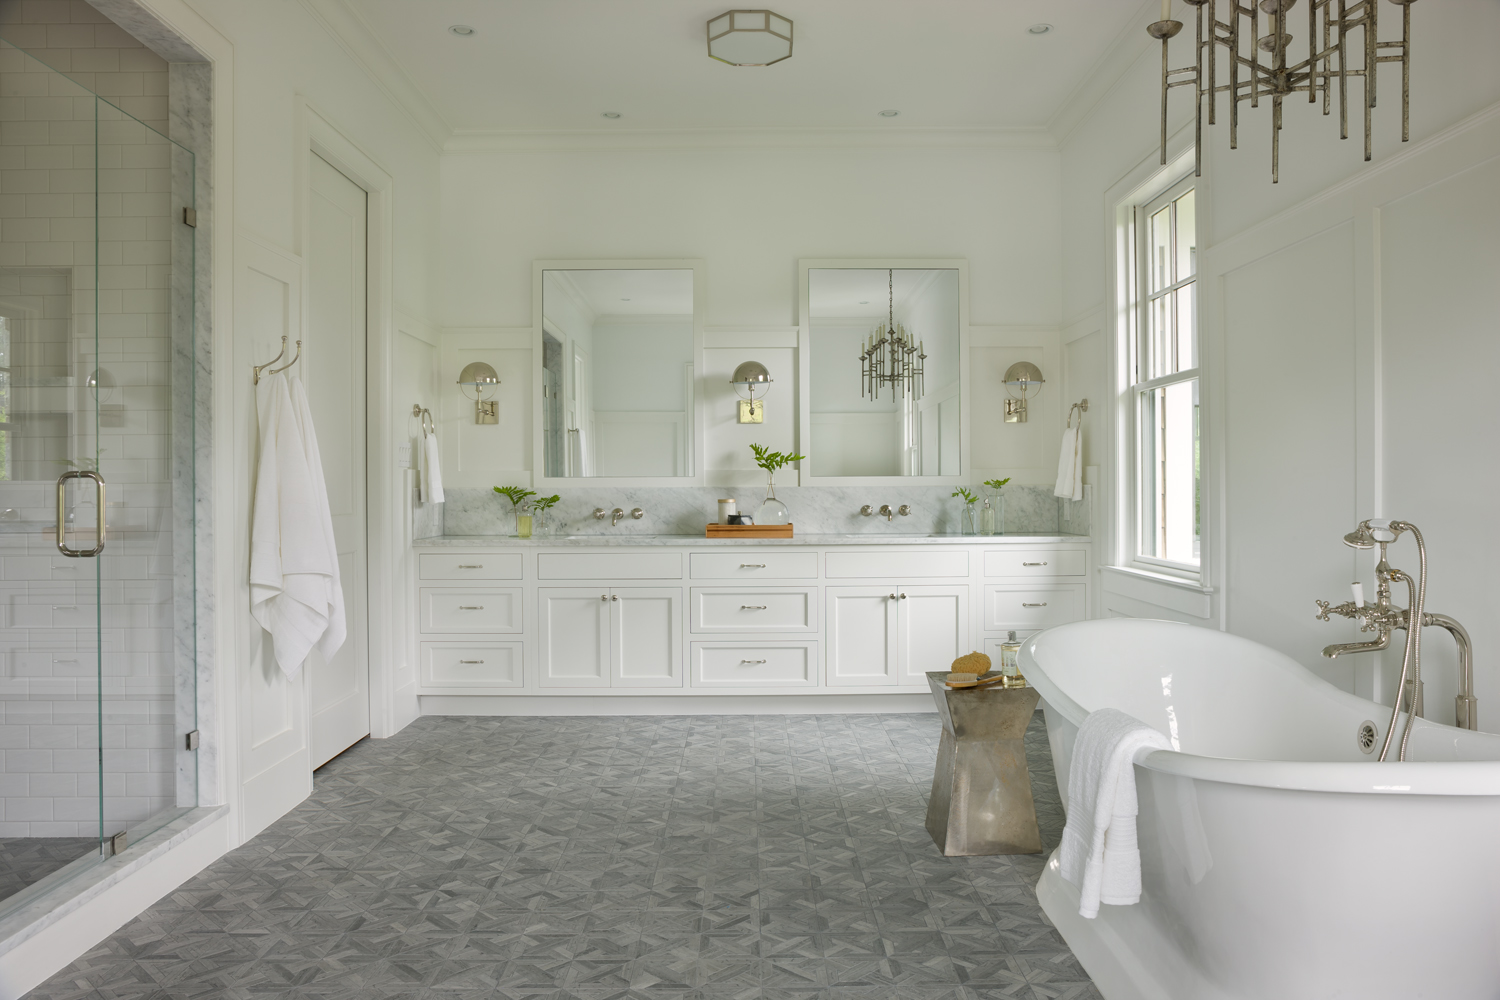 Amazing And finally here is the master bath